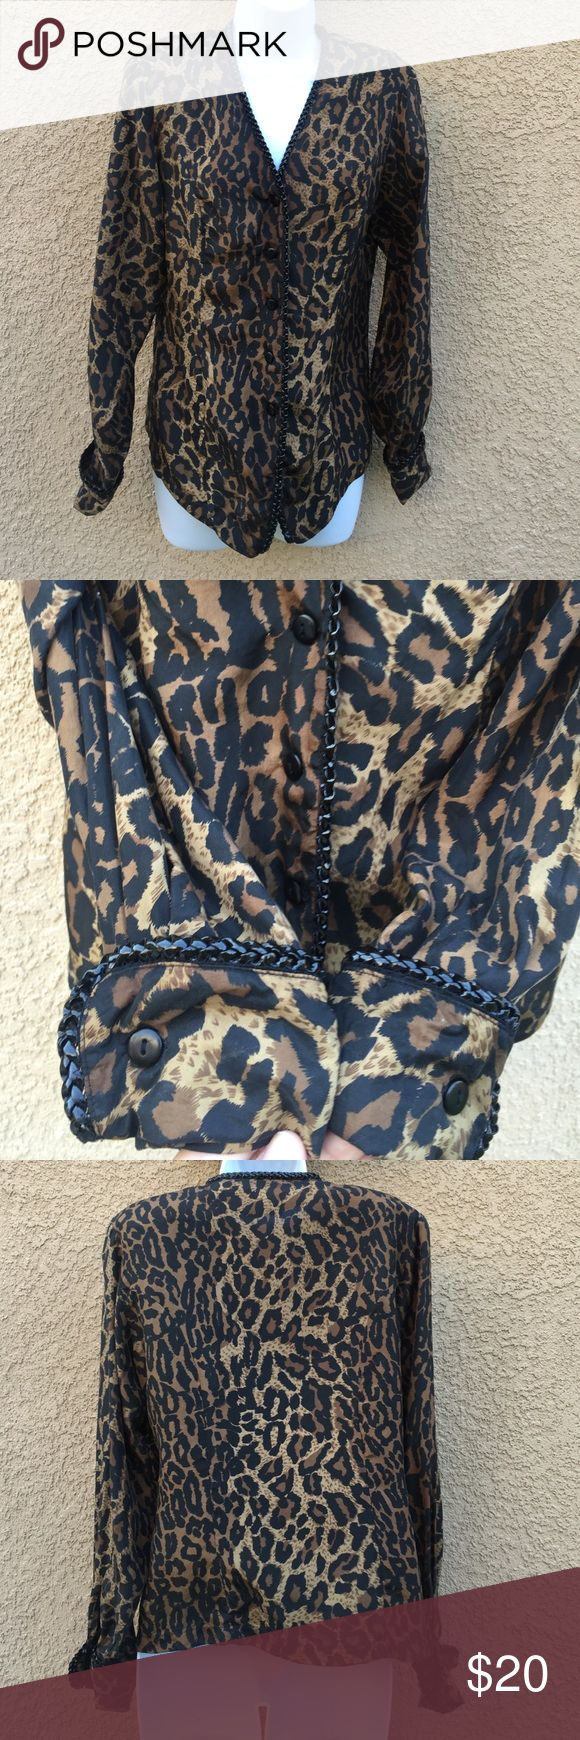 Silk Animal print long sleeve top Gently worn , size S , 100 percent silk , black non leather trim through tour front and sleeves, shoulder pads Anna & Frank  Tops Blouses